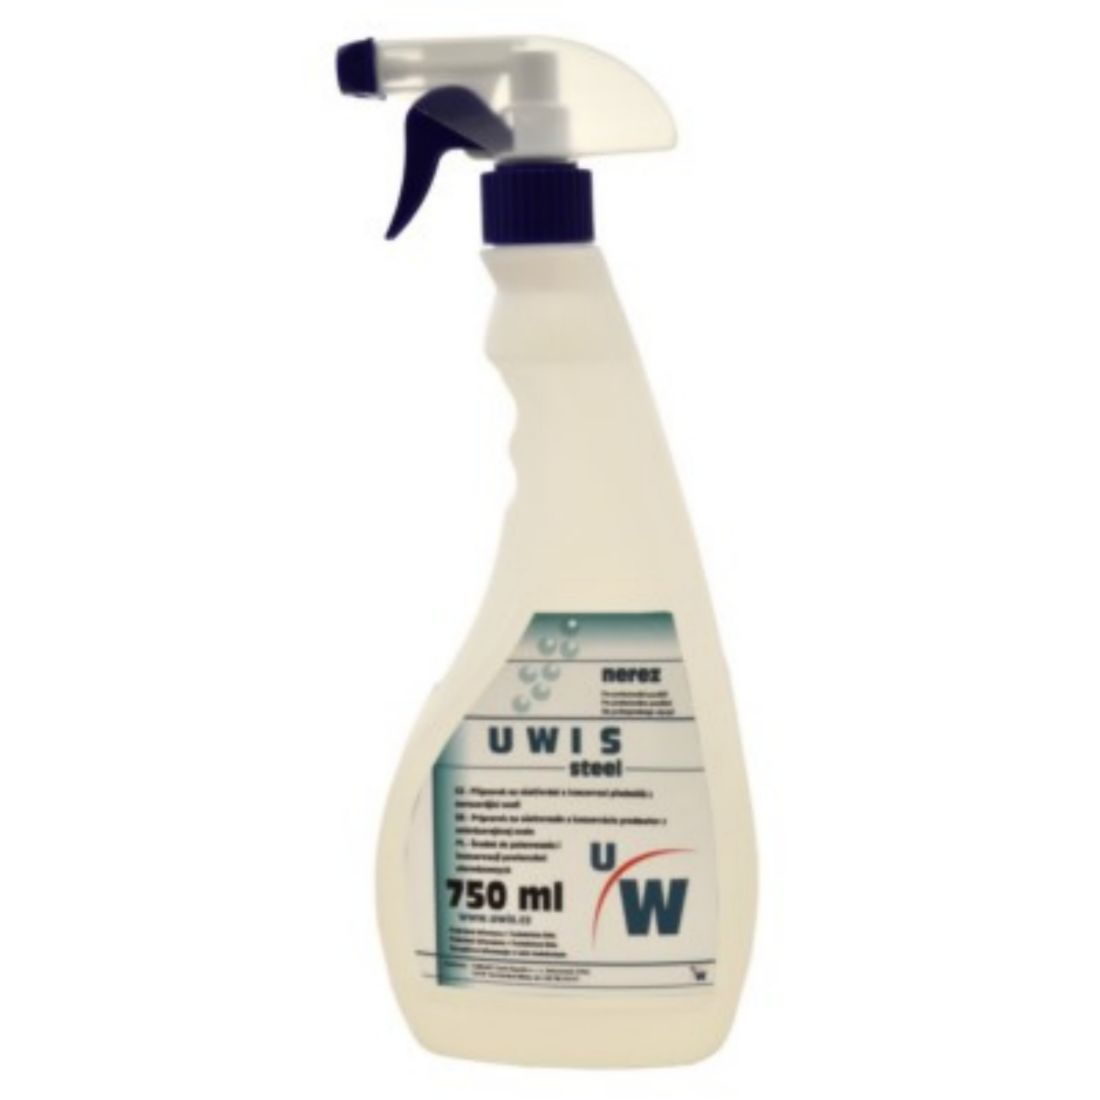 UWIS steel 750 ml